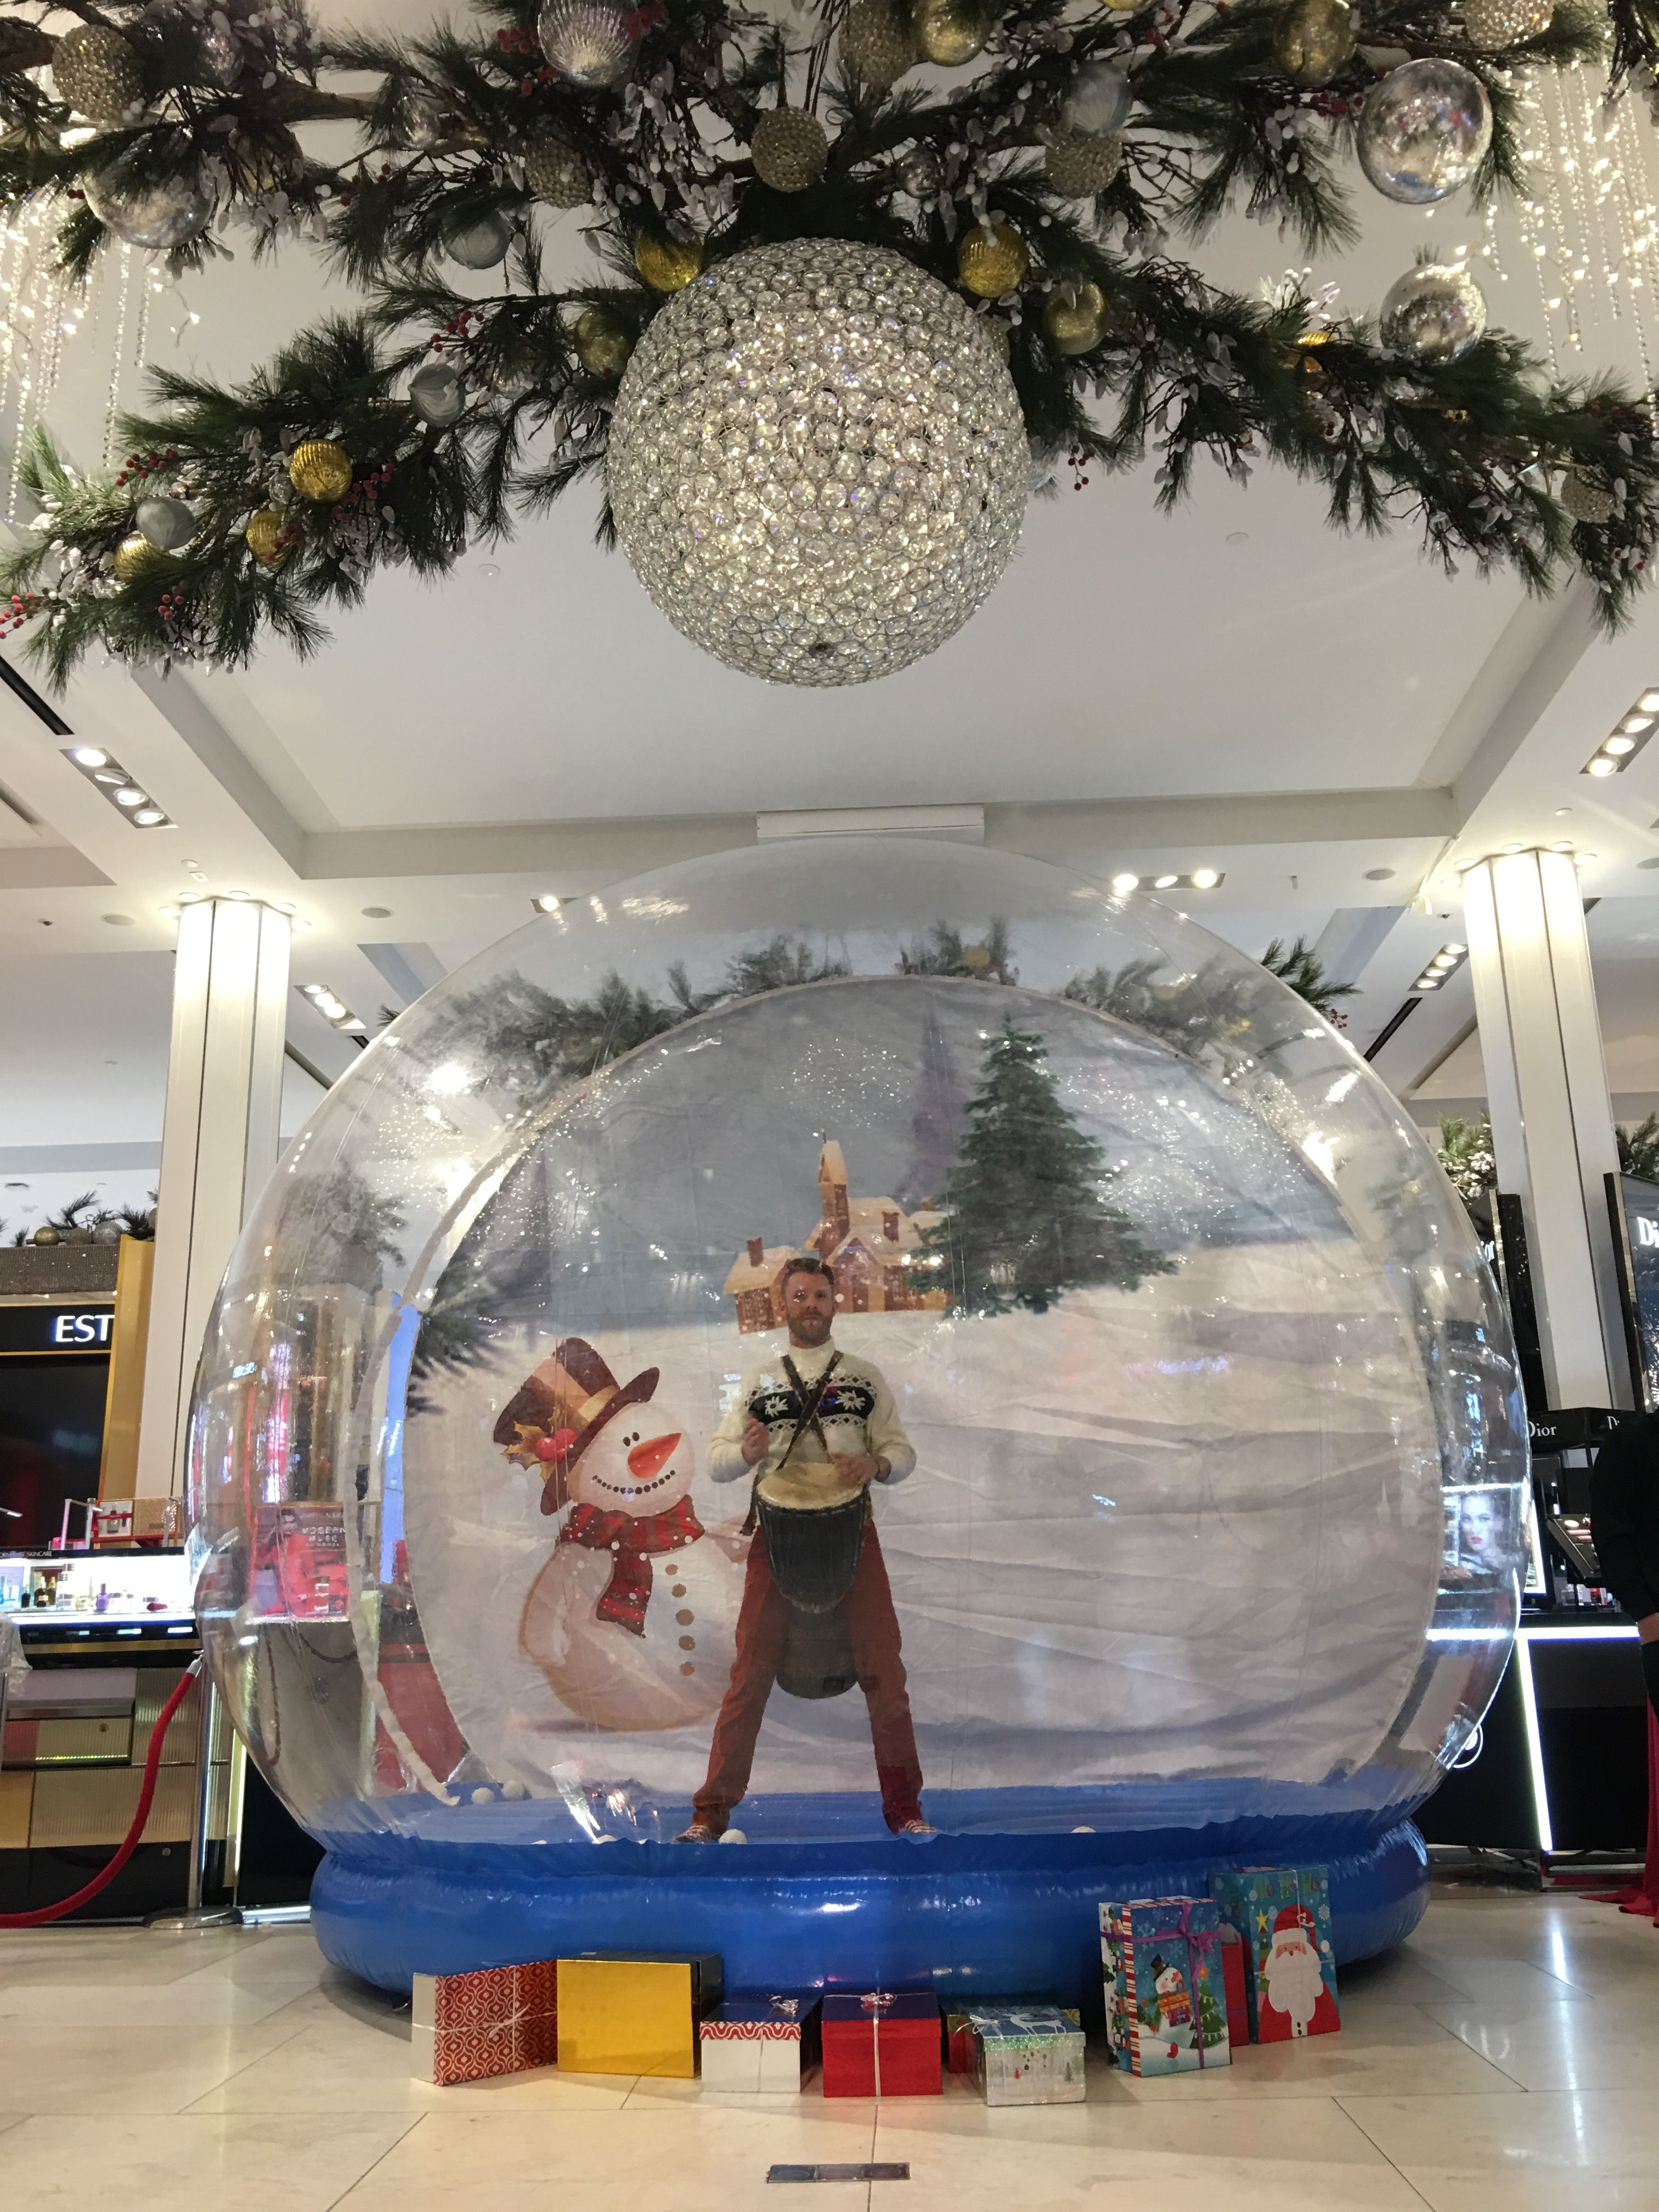 Step Inside The Fun This Winter With This Giant Snowglobe Photo